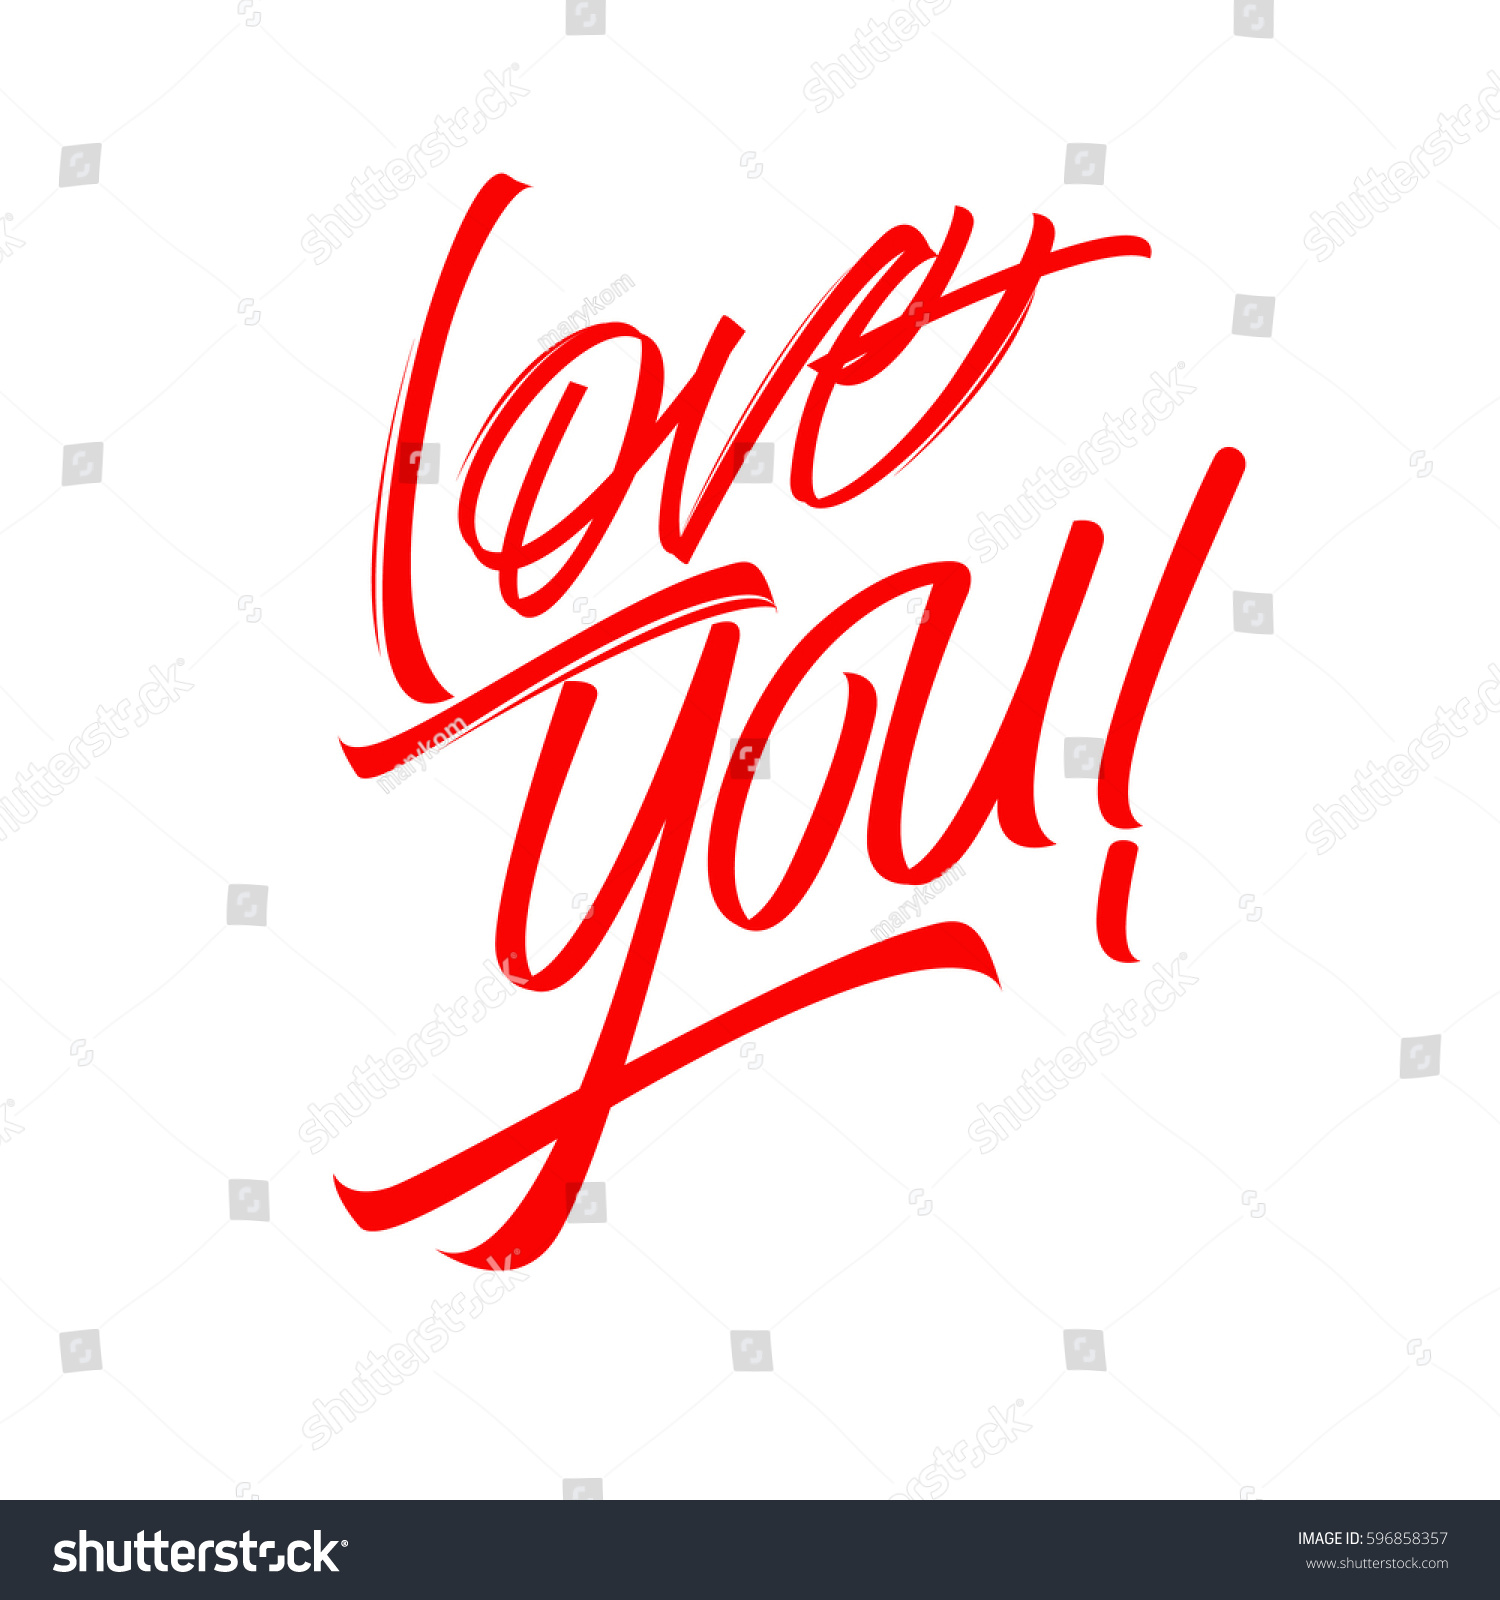 Love You Handwritten Inscription Painted Red Stock Vector (Royalty ...